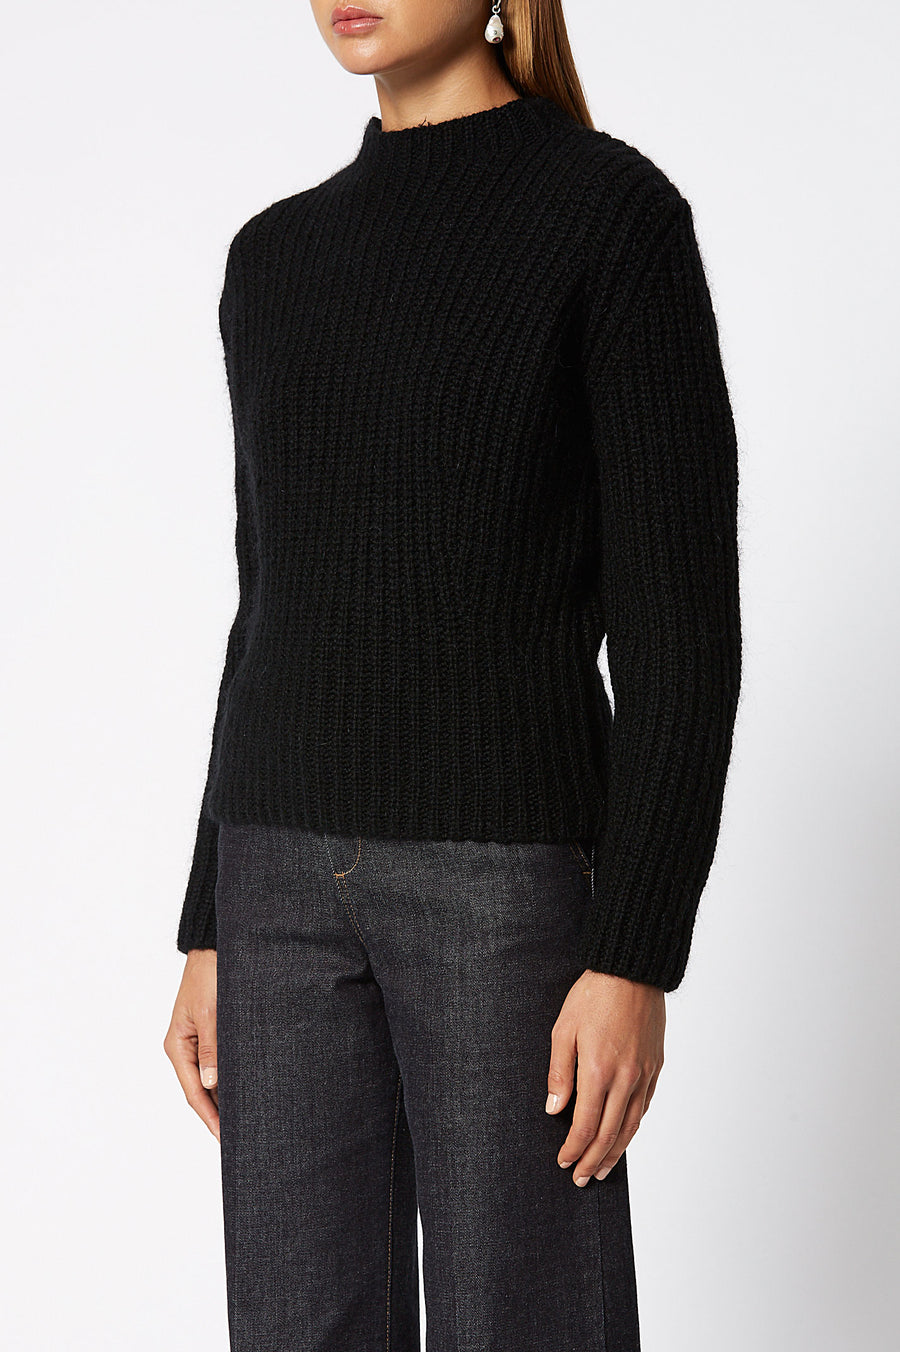 Cropped Rib Sweater, rib-knitted, slim fit, turtleneck silhouette, Color Black